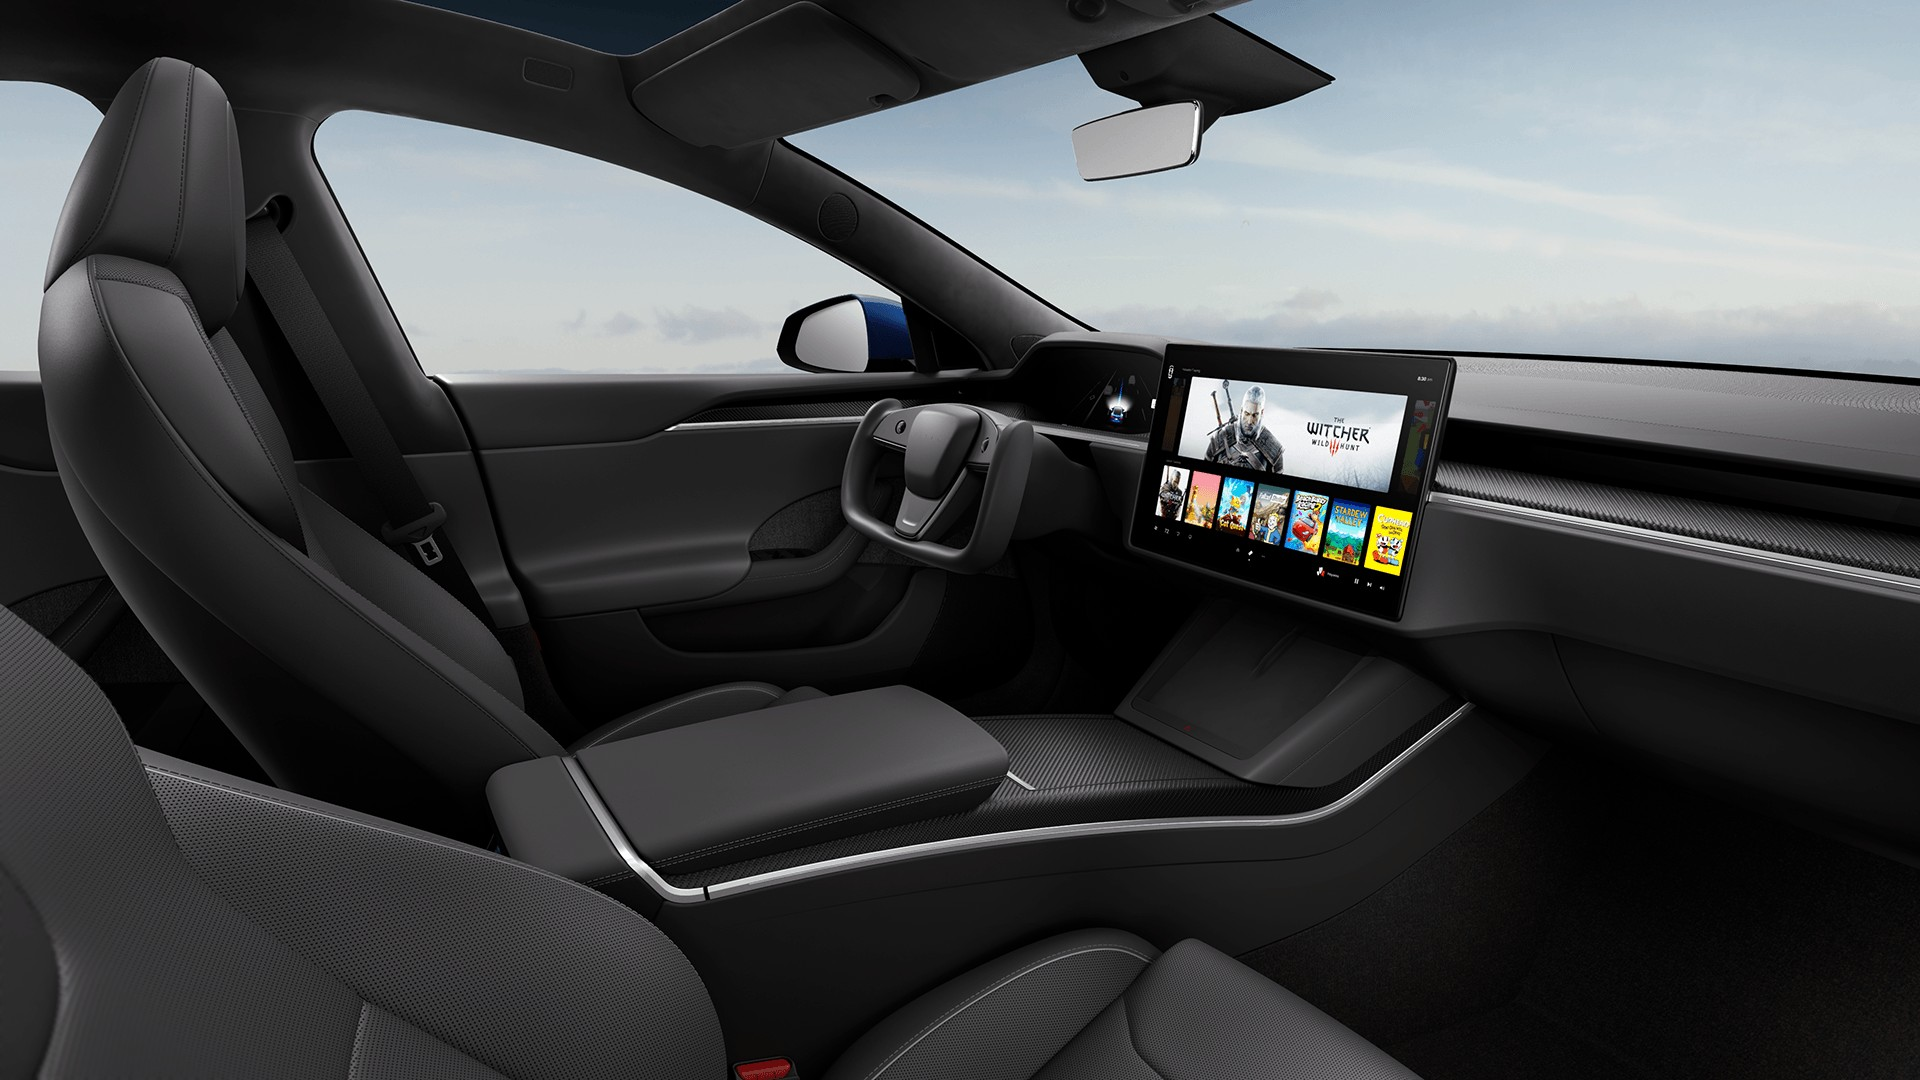 Tesla delivers first Model S Plaid models without a steering wheel